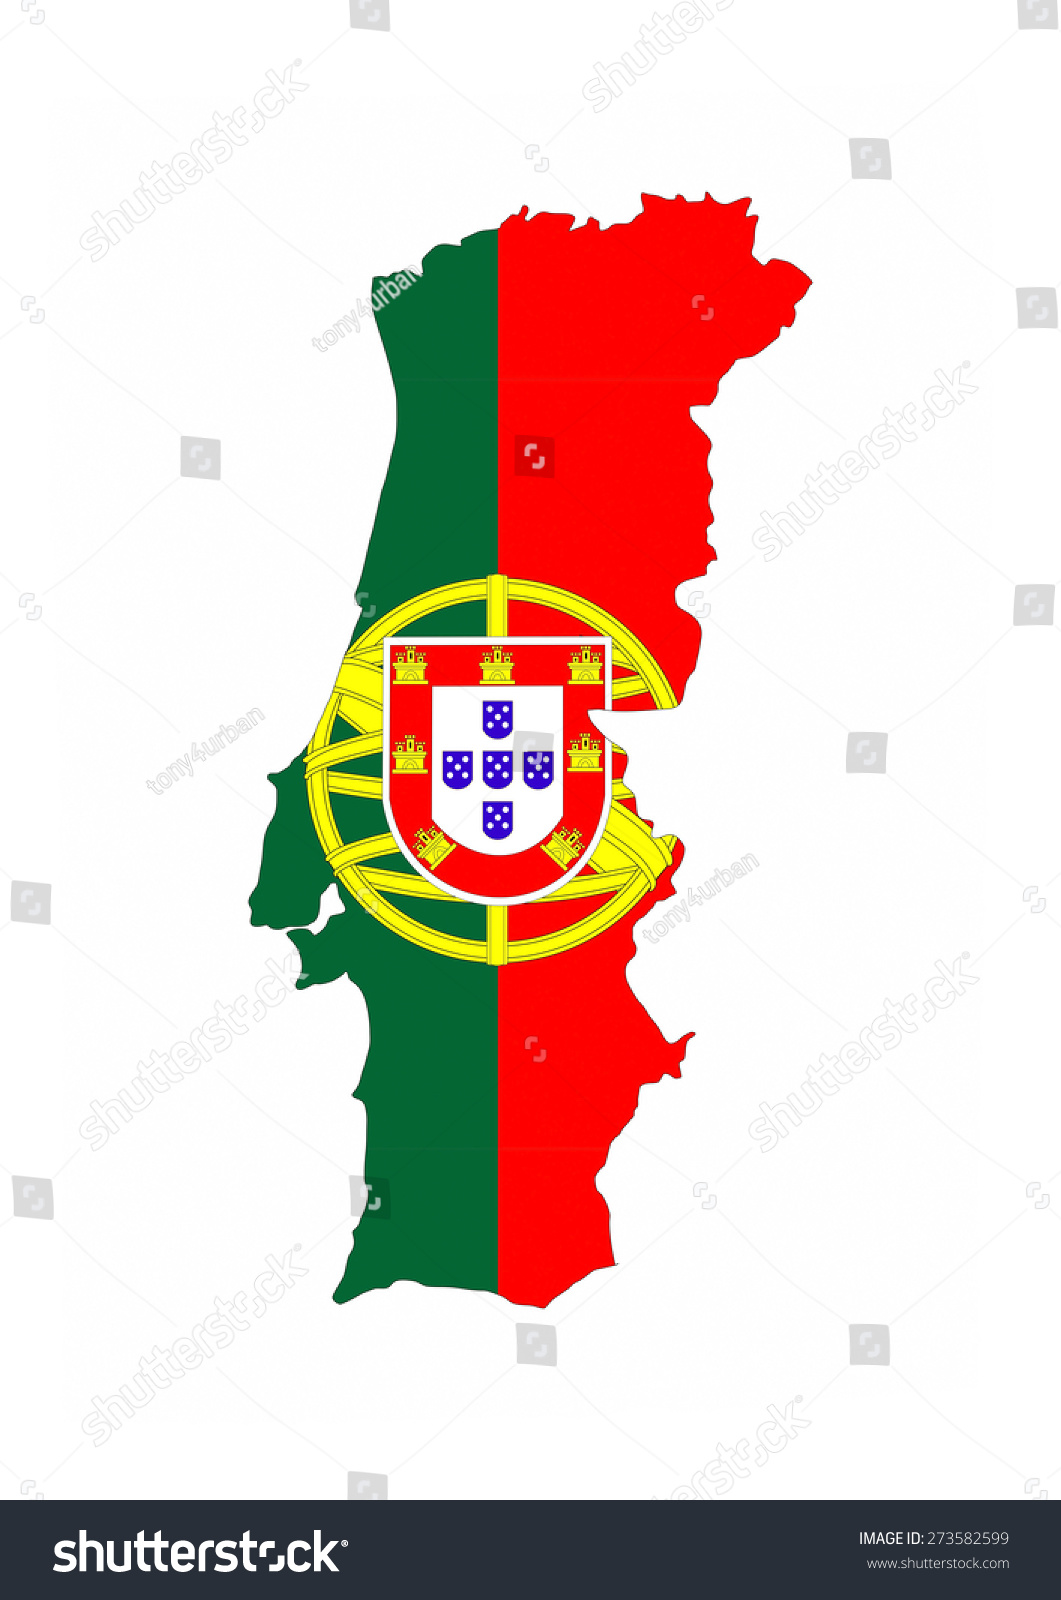 Royalty Free Stock Illustration Of Portugal Country Flag Map Shape